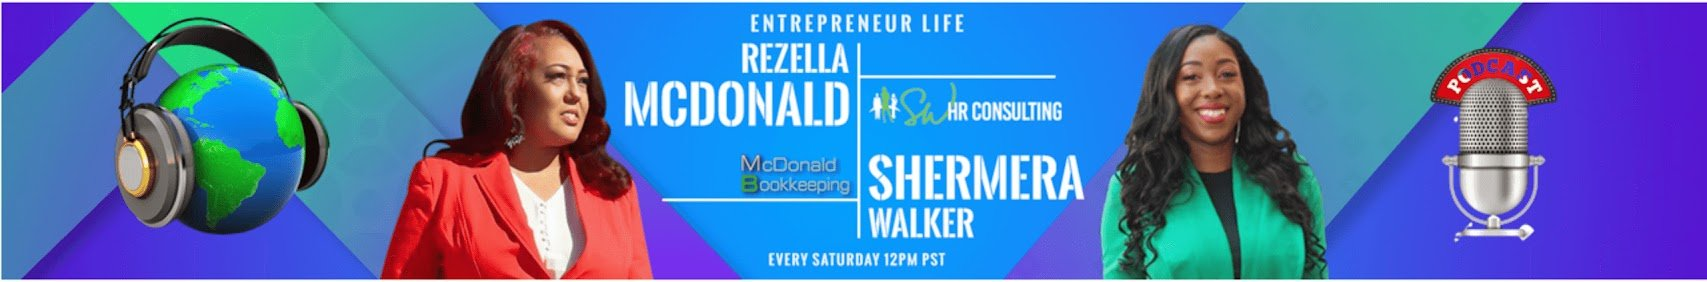 Entrepreneur Life, Entrepreneur Life Radio Show, Human Resource Consulting Firm in Las Vegas | SW HR Consulting